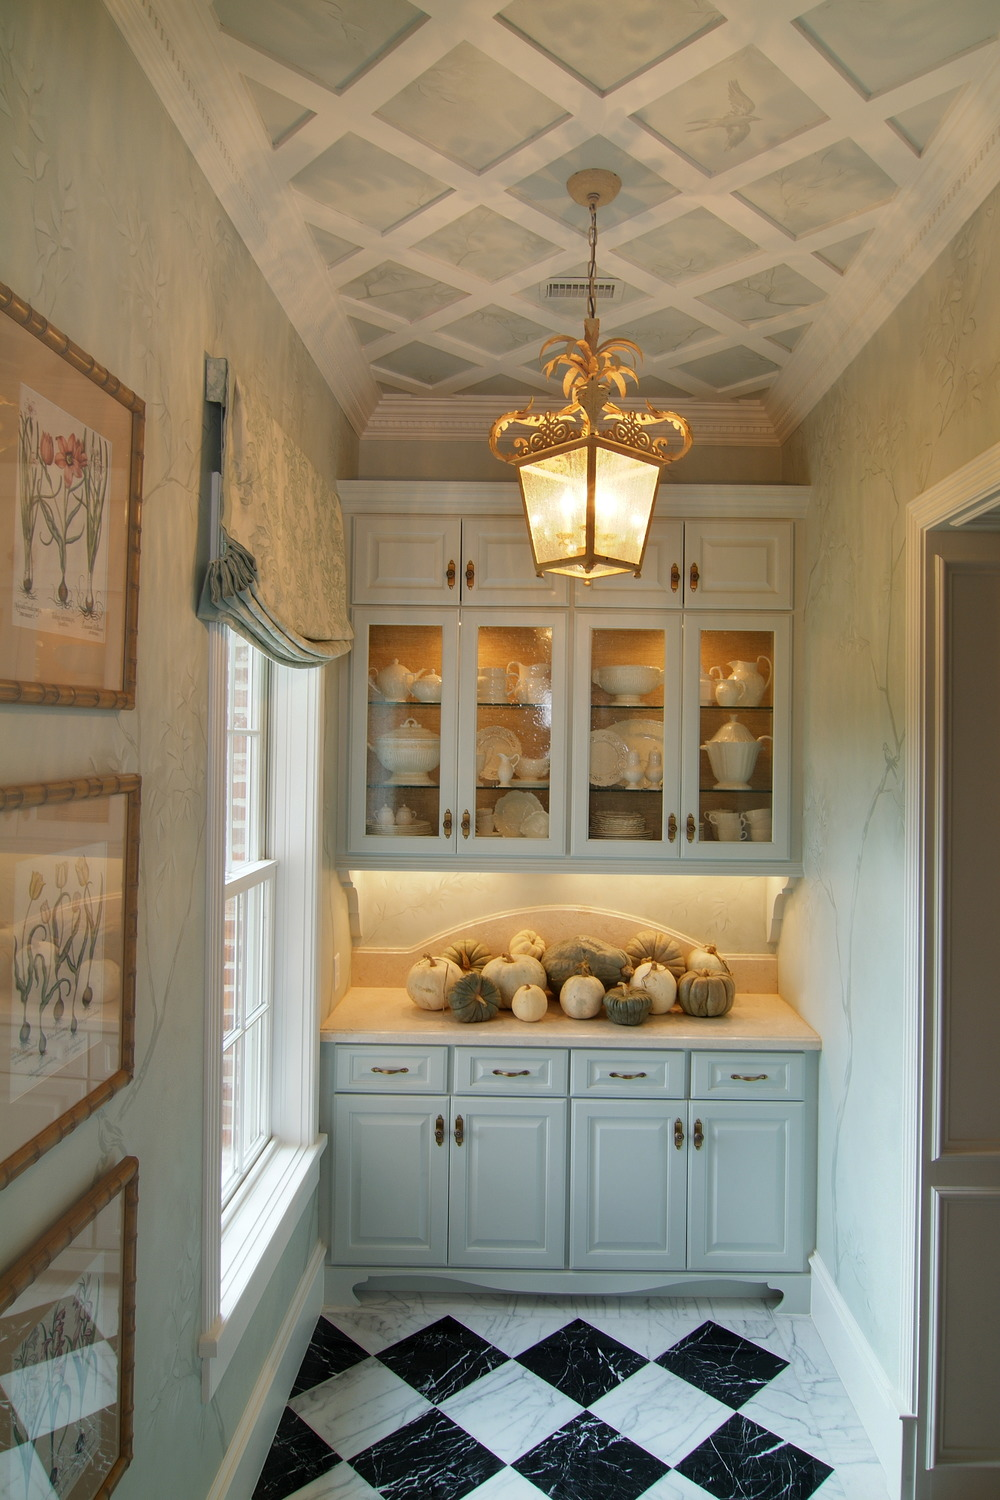 Butler's pantry with garden room style, Designer: Carla Aston